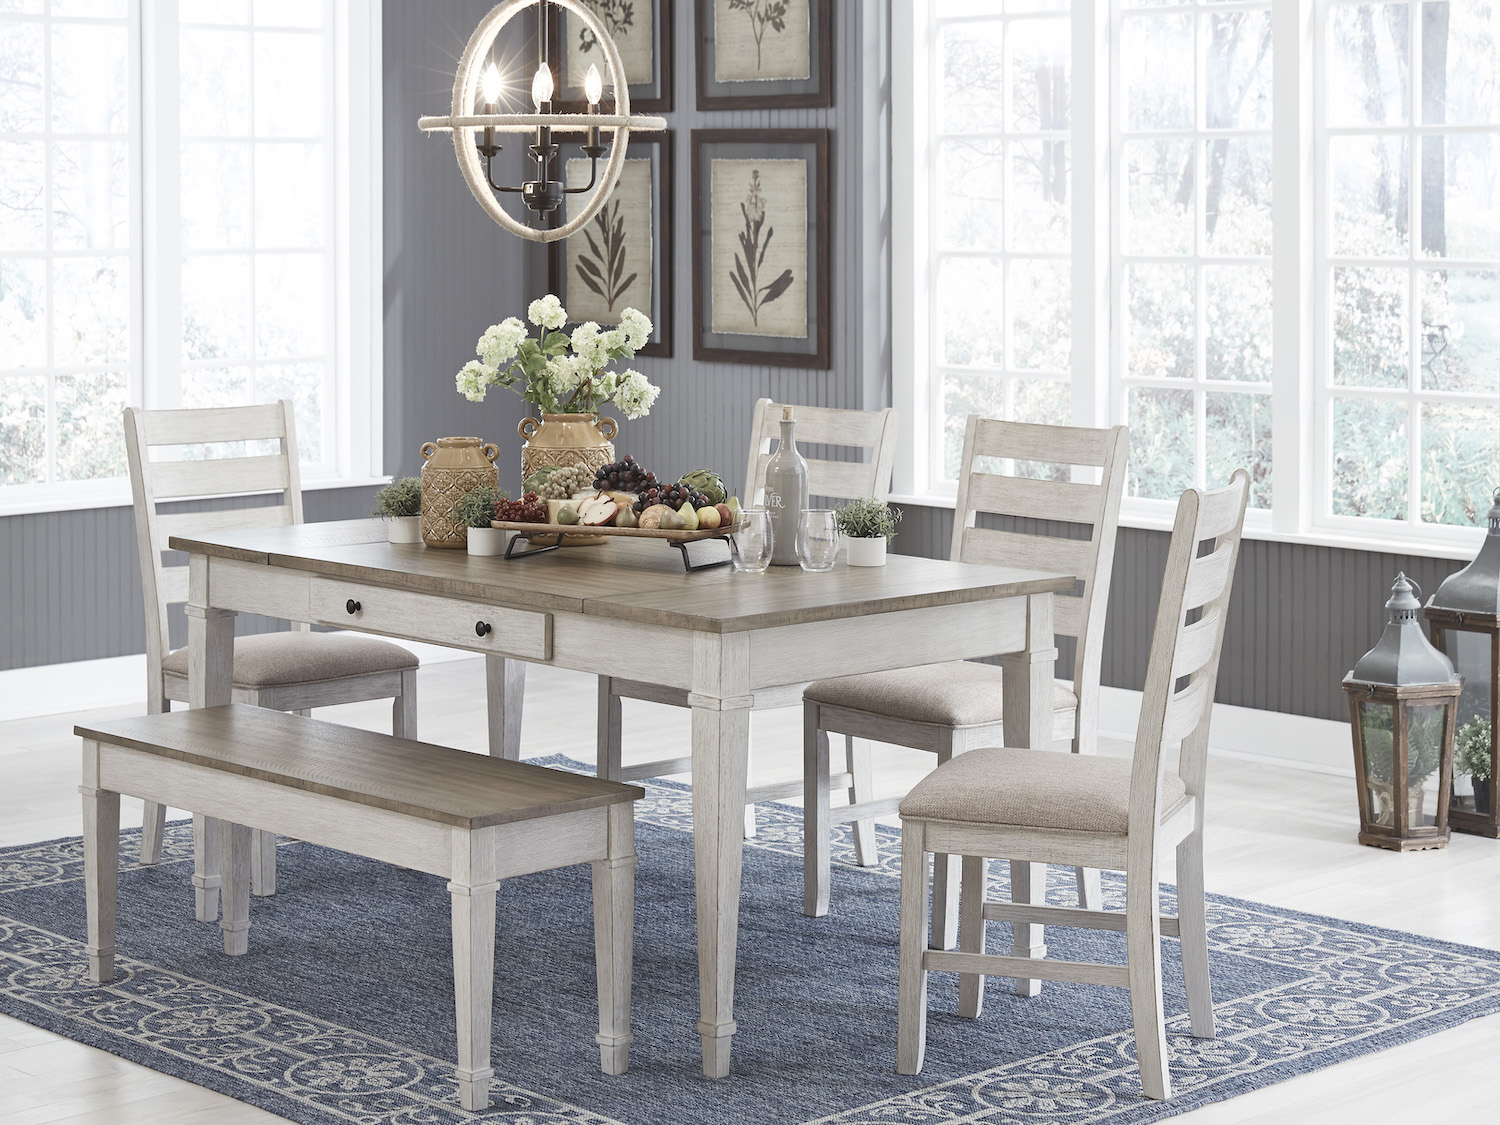 Skempton 5 PC Dining Set, D394, Dining Room Sets, Skempton 5 PC Dining Set from Ashley by Midha Furniture serving Brampton, Mississauga, Etobicoke, Toronto, Scraborough, Caledon, Cambridge, Oakville, Markham, Ajax, Pickering, Oshawa, Richmondhill, Kitchener, Hamilton, Cambridge, Waterloo and GTA area